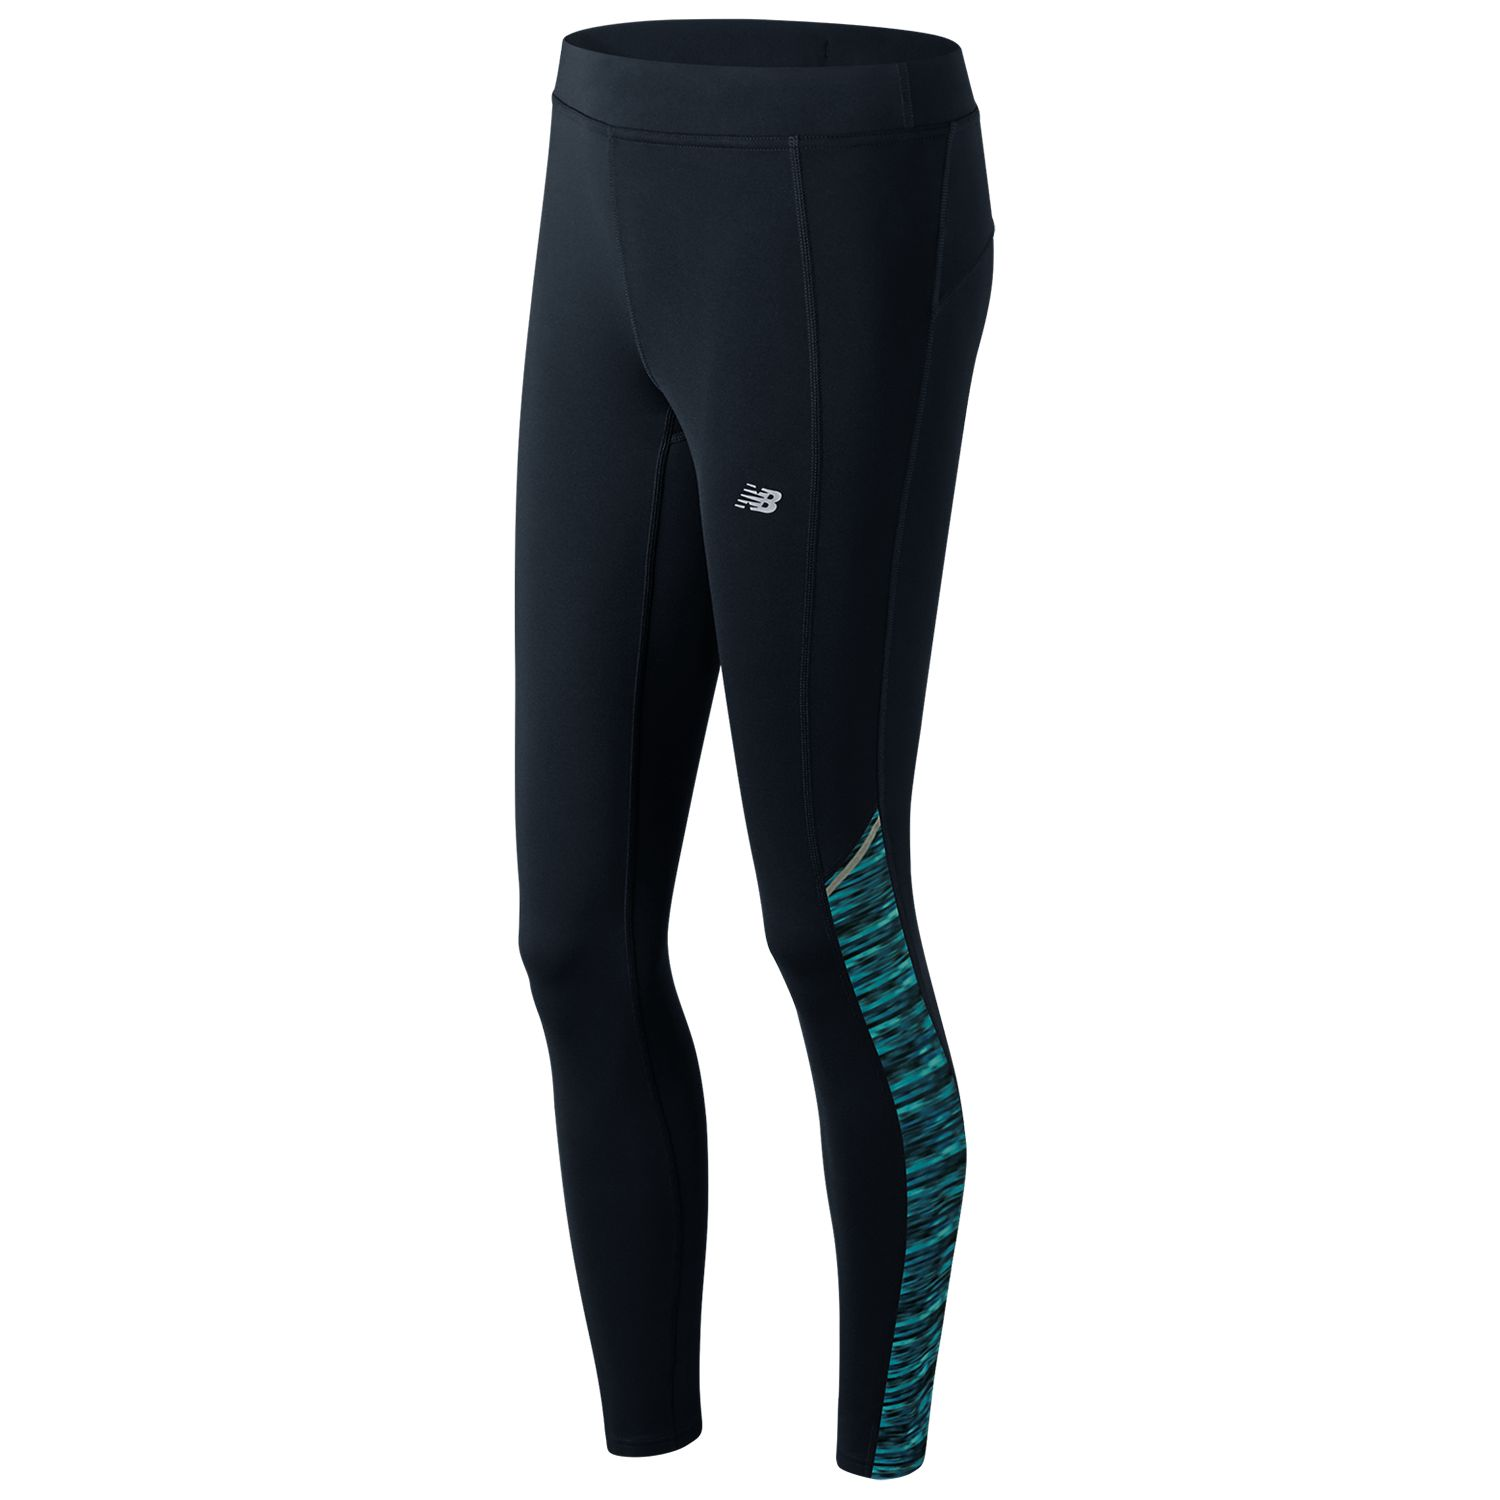 Womens New Balance Printed Accelerate Workout Leggings